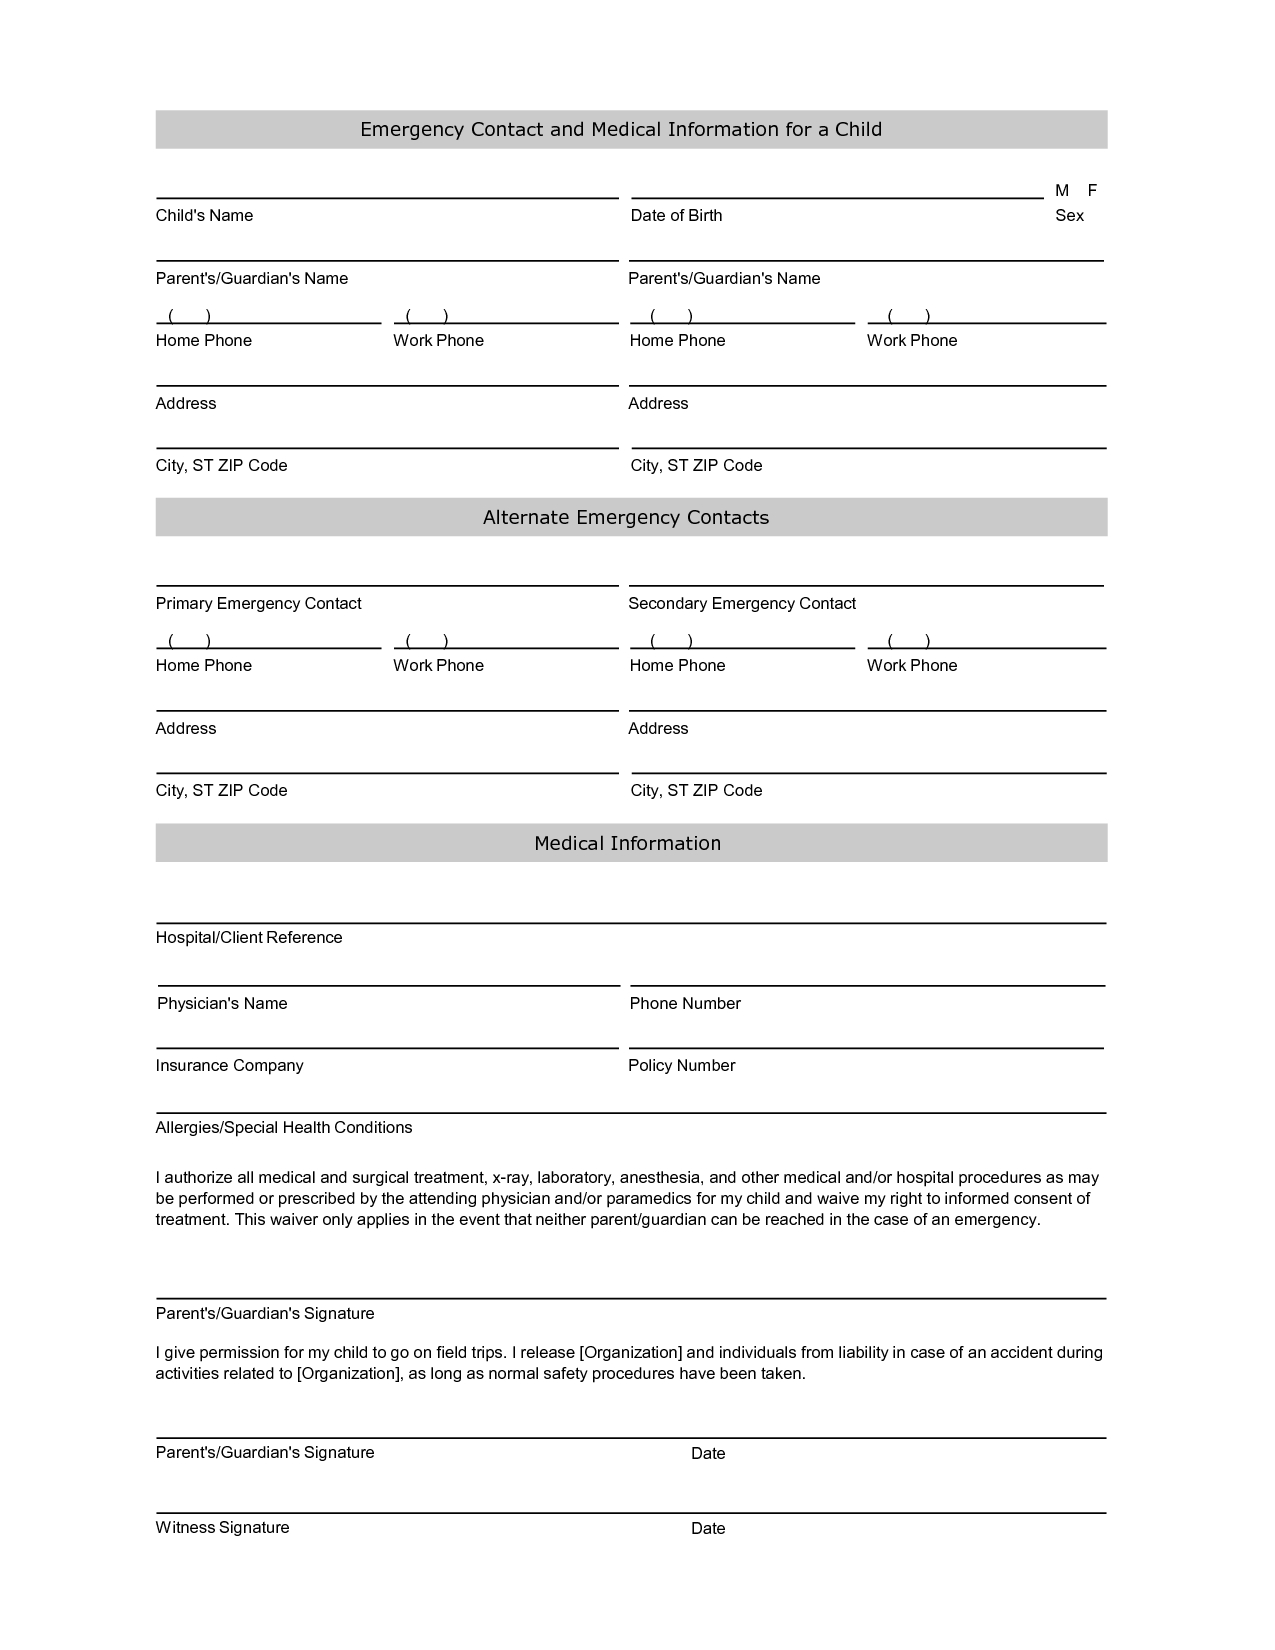 Emergency Contact Information Form Template  Printables  Daycare Within Student Information Card Template